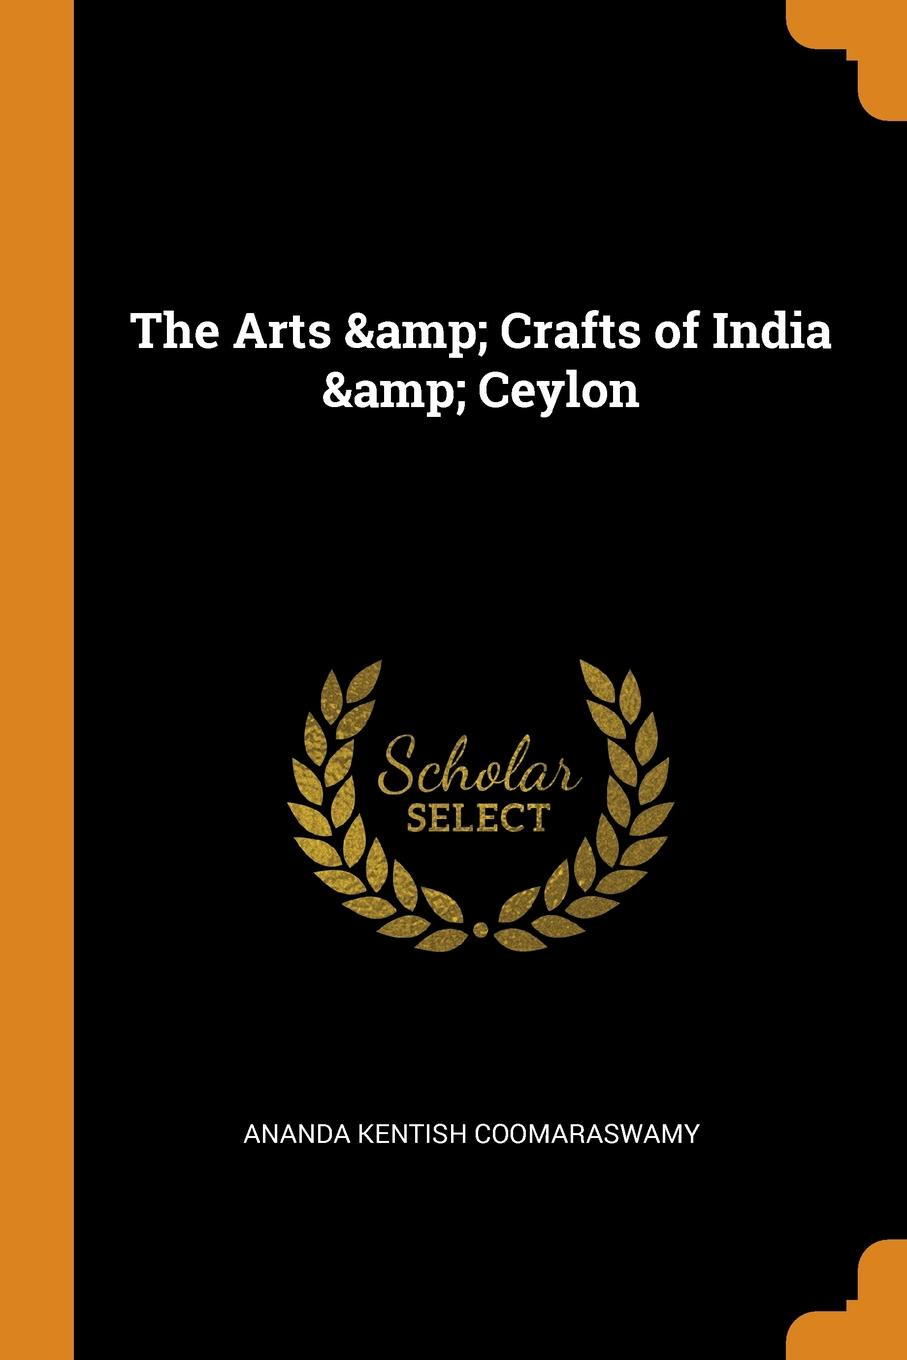 Ananda Kentish Coomaraswamy. The Arts & Crafts of India & Ceylon